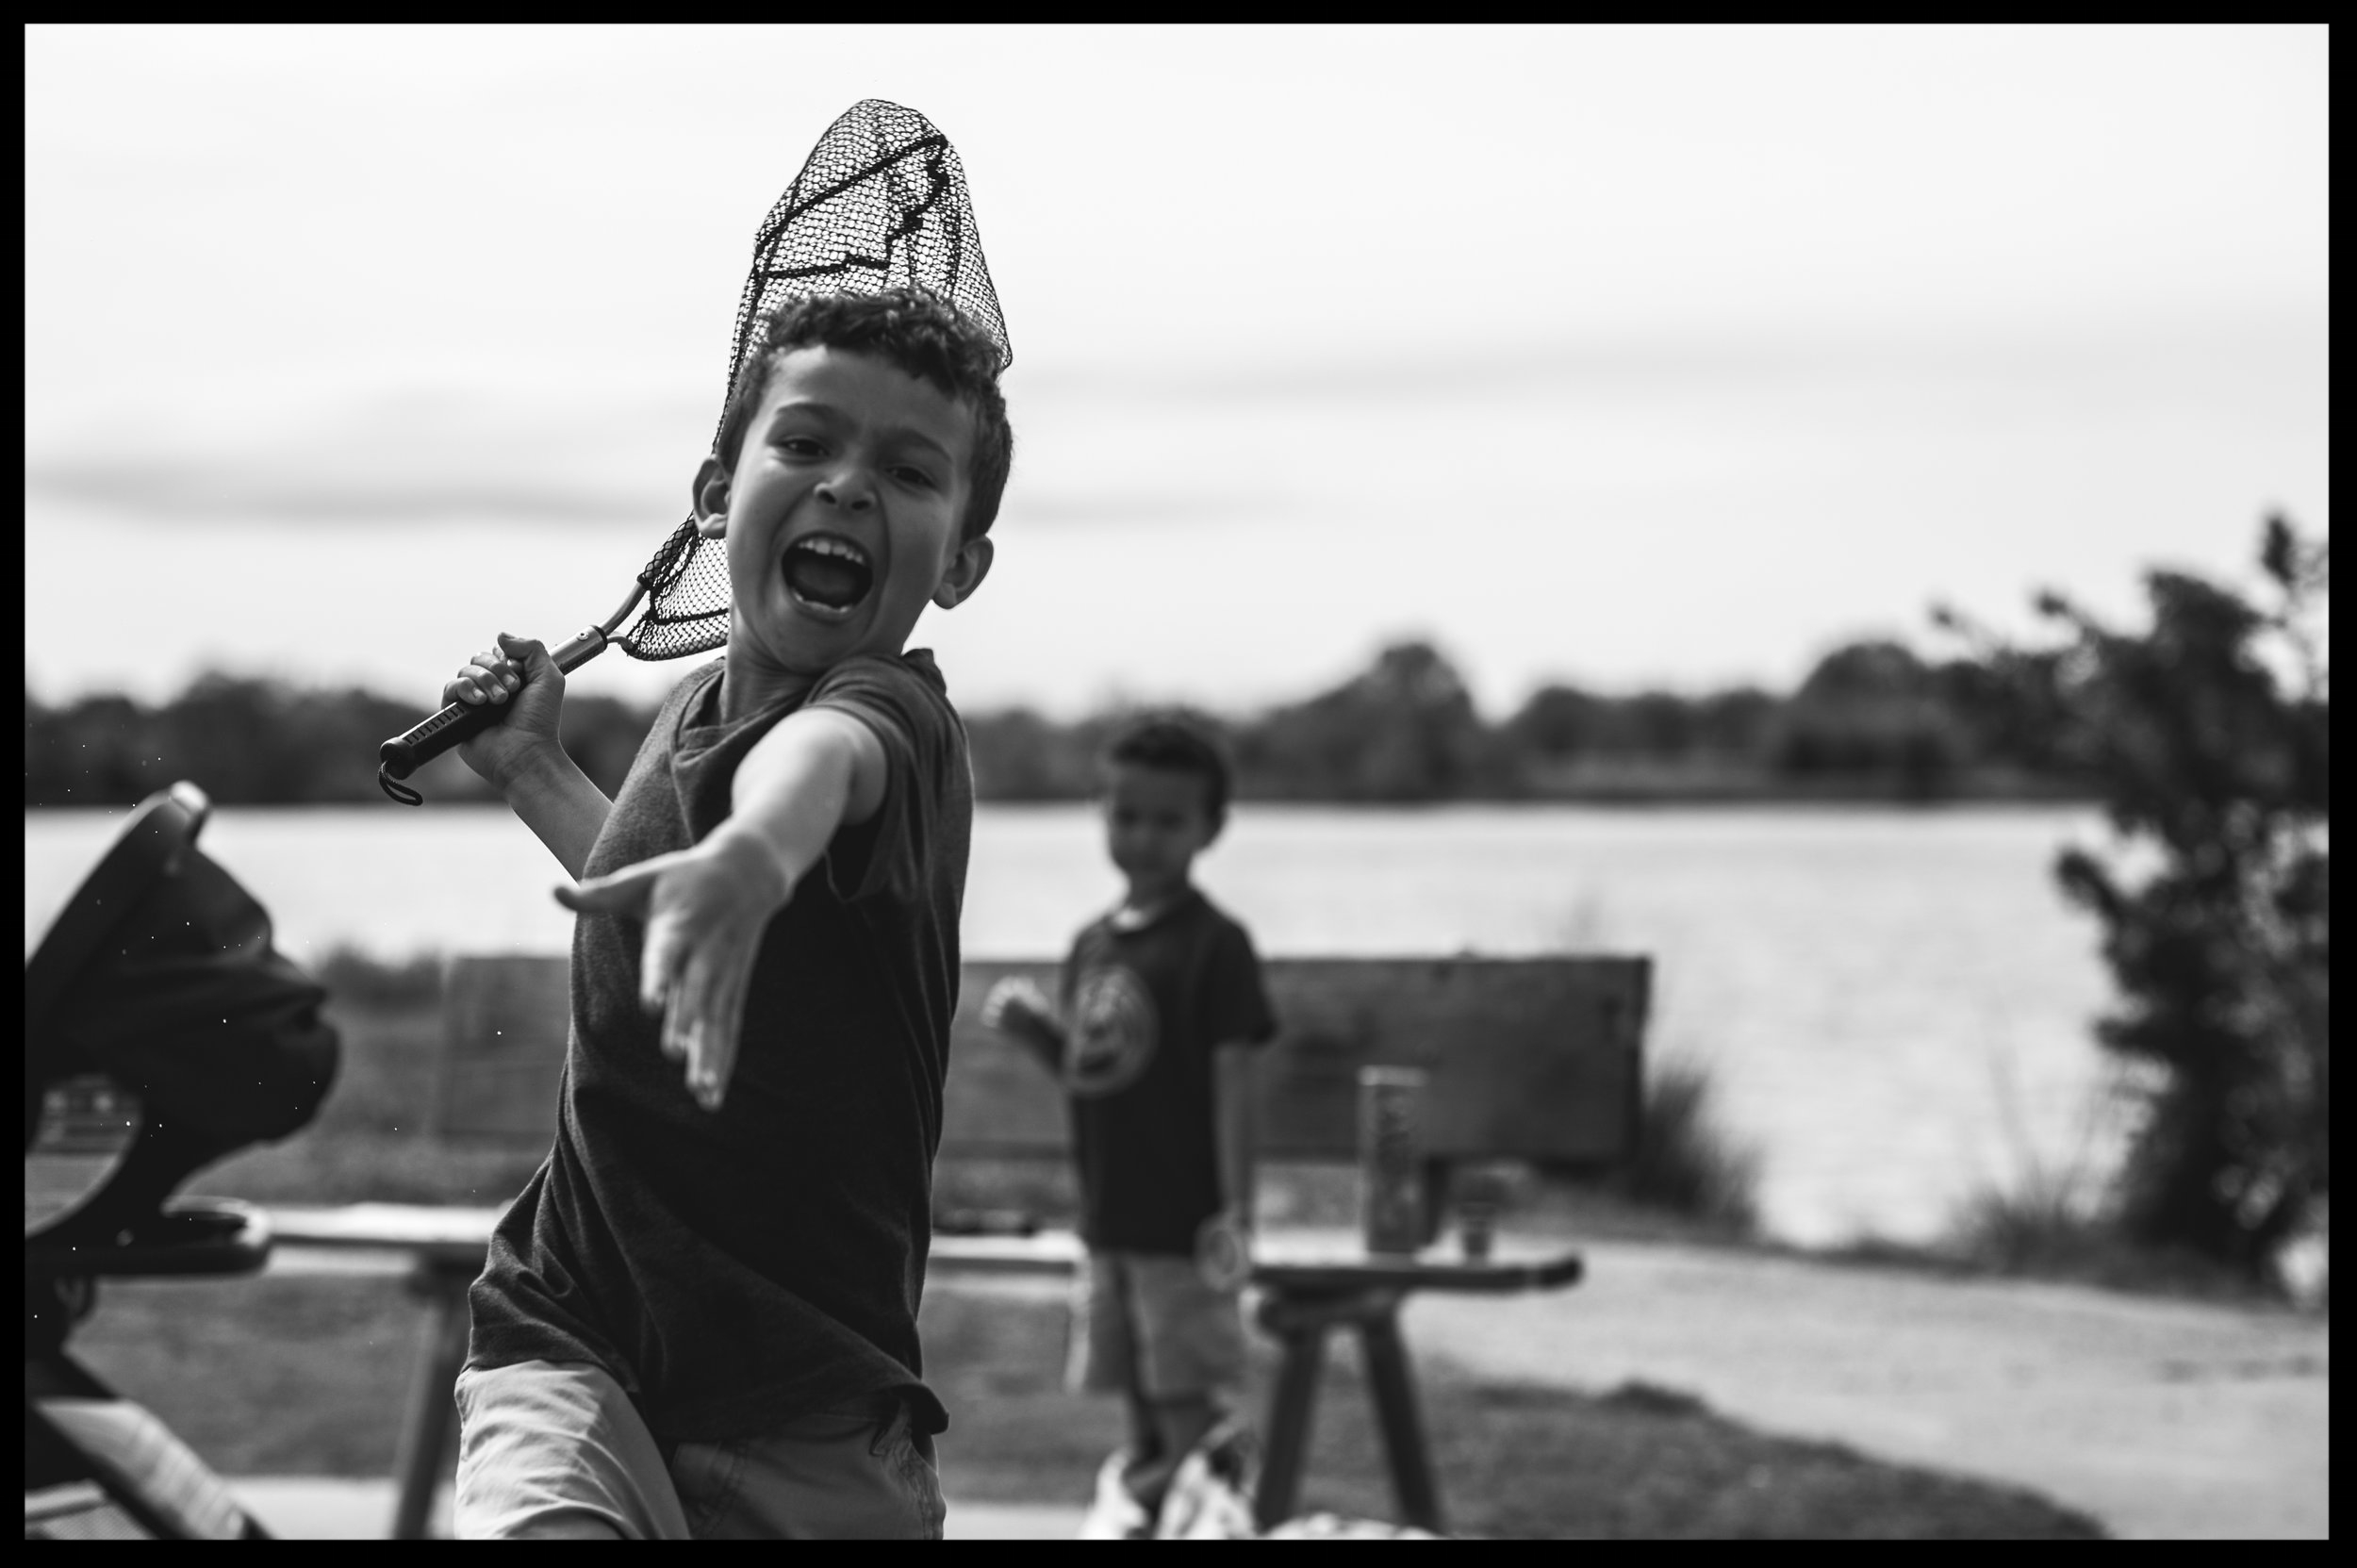 Little boy running toward the camera with a net, black and white